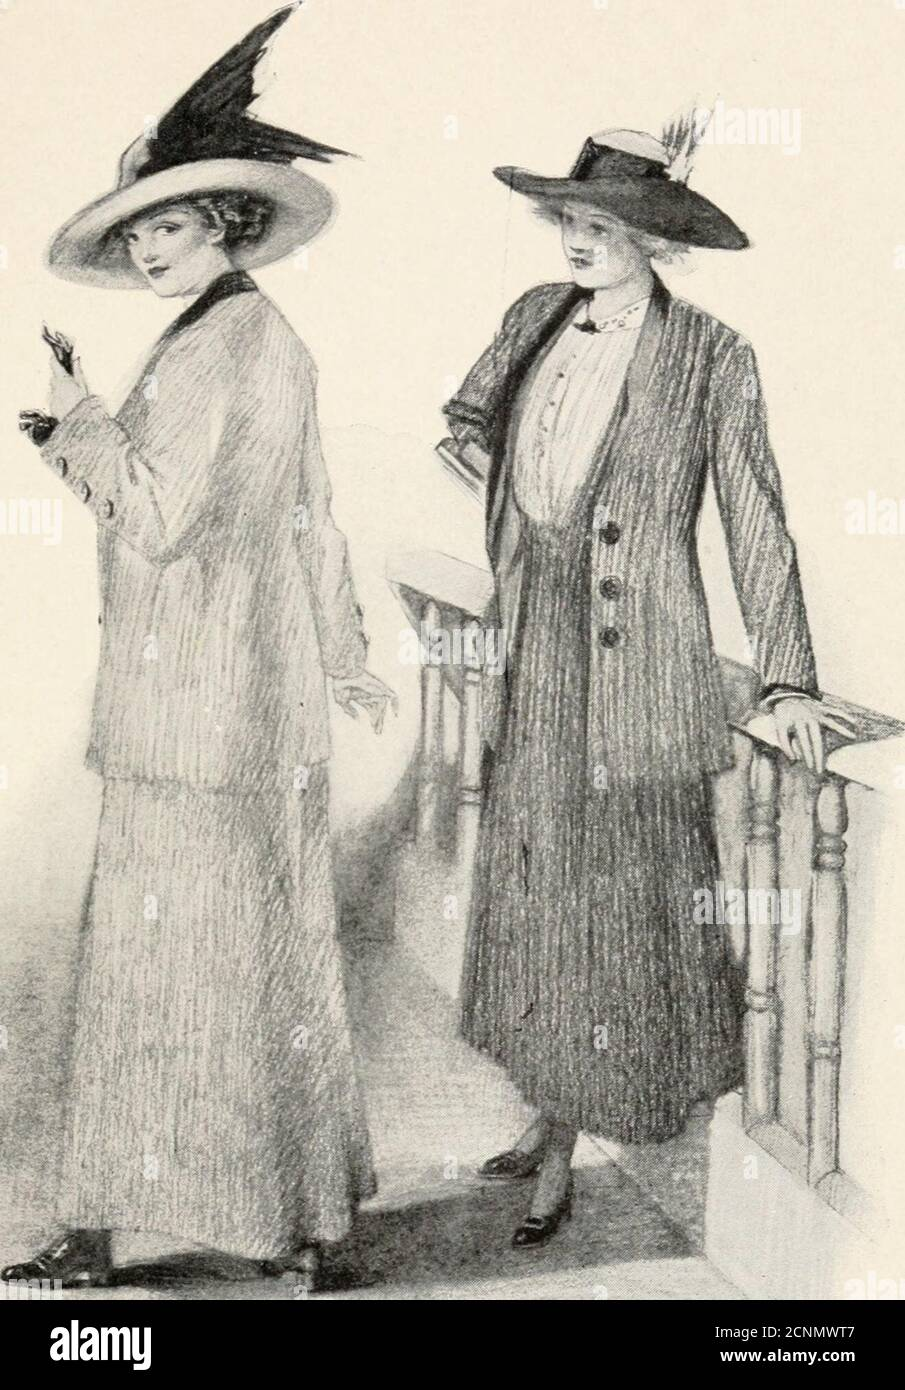 . Junior co-ed . icent and diffident over the thingsshe could do really well. It was only over sub-jects which she but partially understood that she ranted. If only I could write as well and convincingly as Winifred began, but was not allowed to finish. Yes/ hastily, thank you—Winifred, your hatlooks extremely well on you. Is—is mine at allbecoming? It was the new Gussie who spoke, and whoturned her dark head slowly about to enableWinifred to view the broad-brimmed cream-coloredsatin adorned only by two black wings. 11 The idea is great, announced Winifred en-thusiastically, but if youd bend t Stock Photo